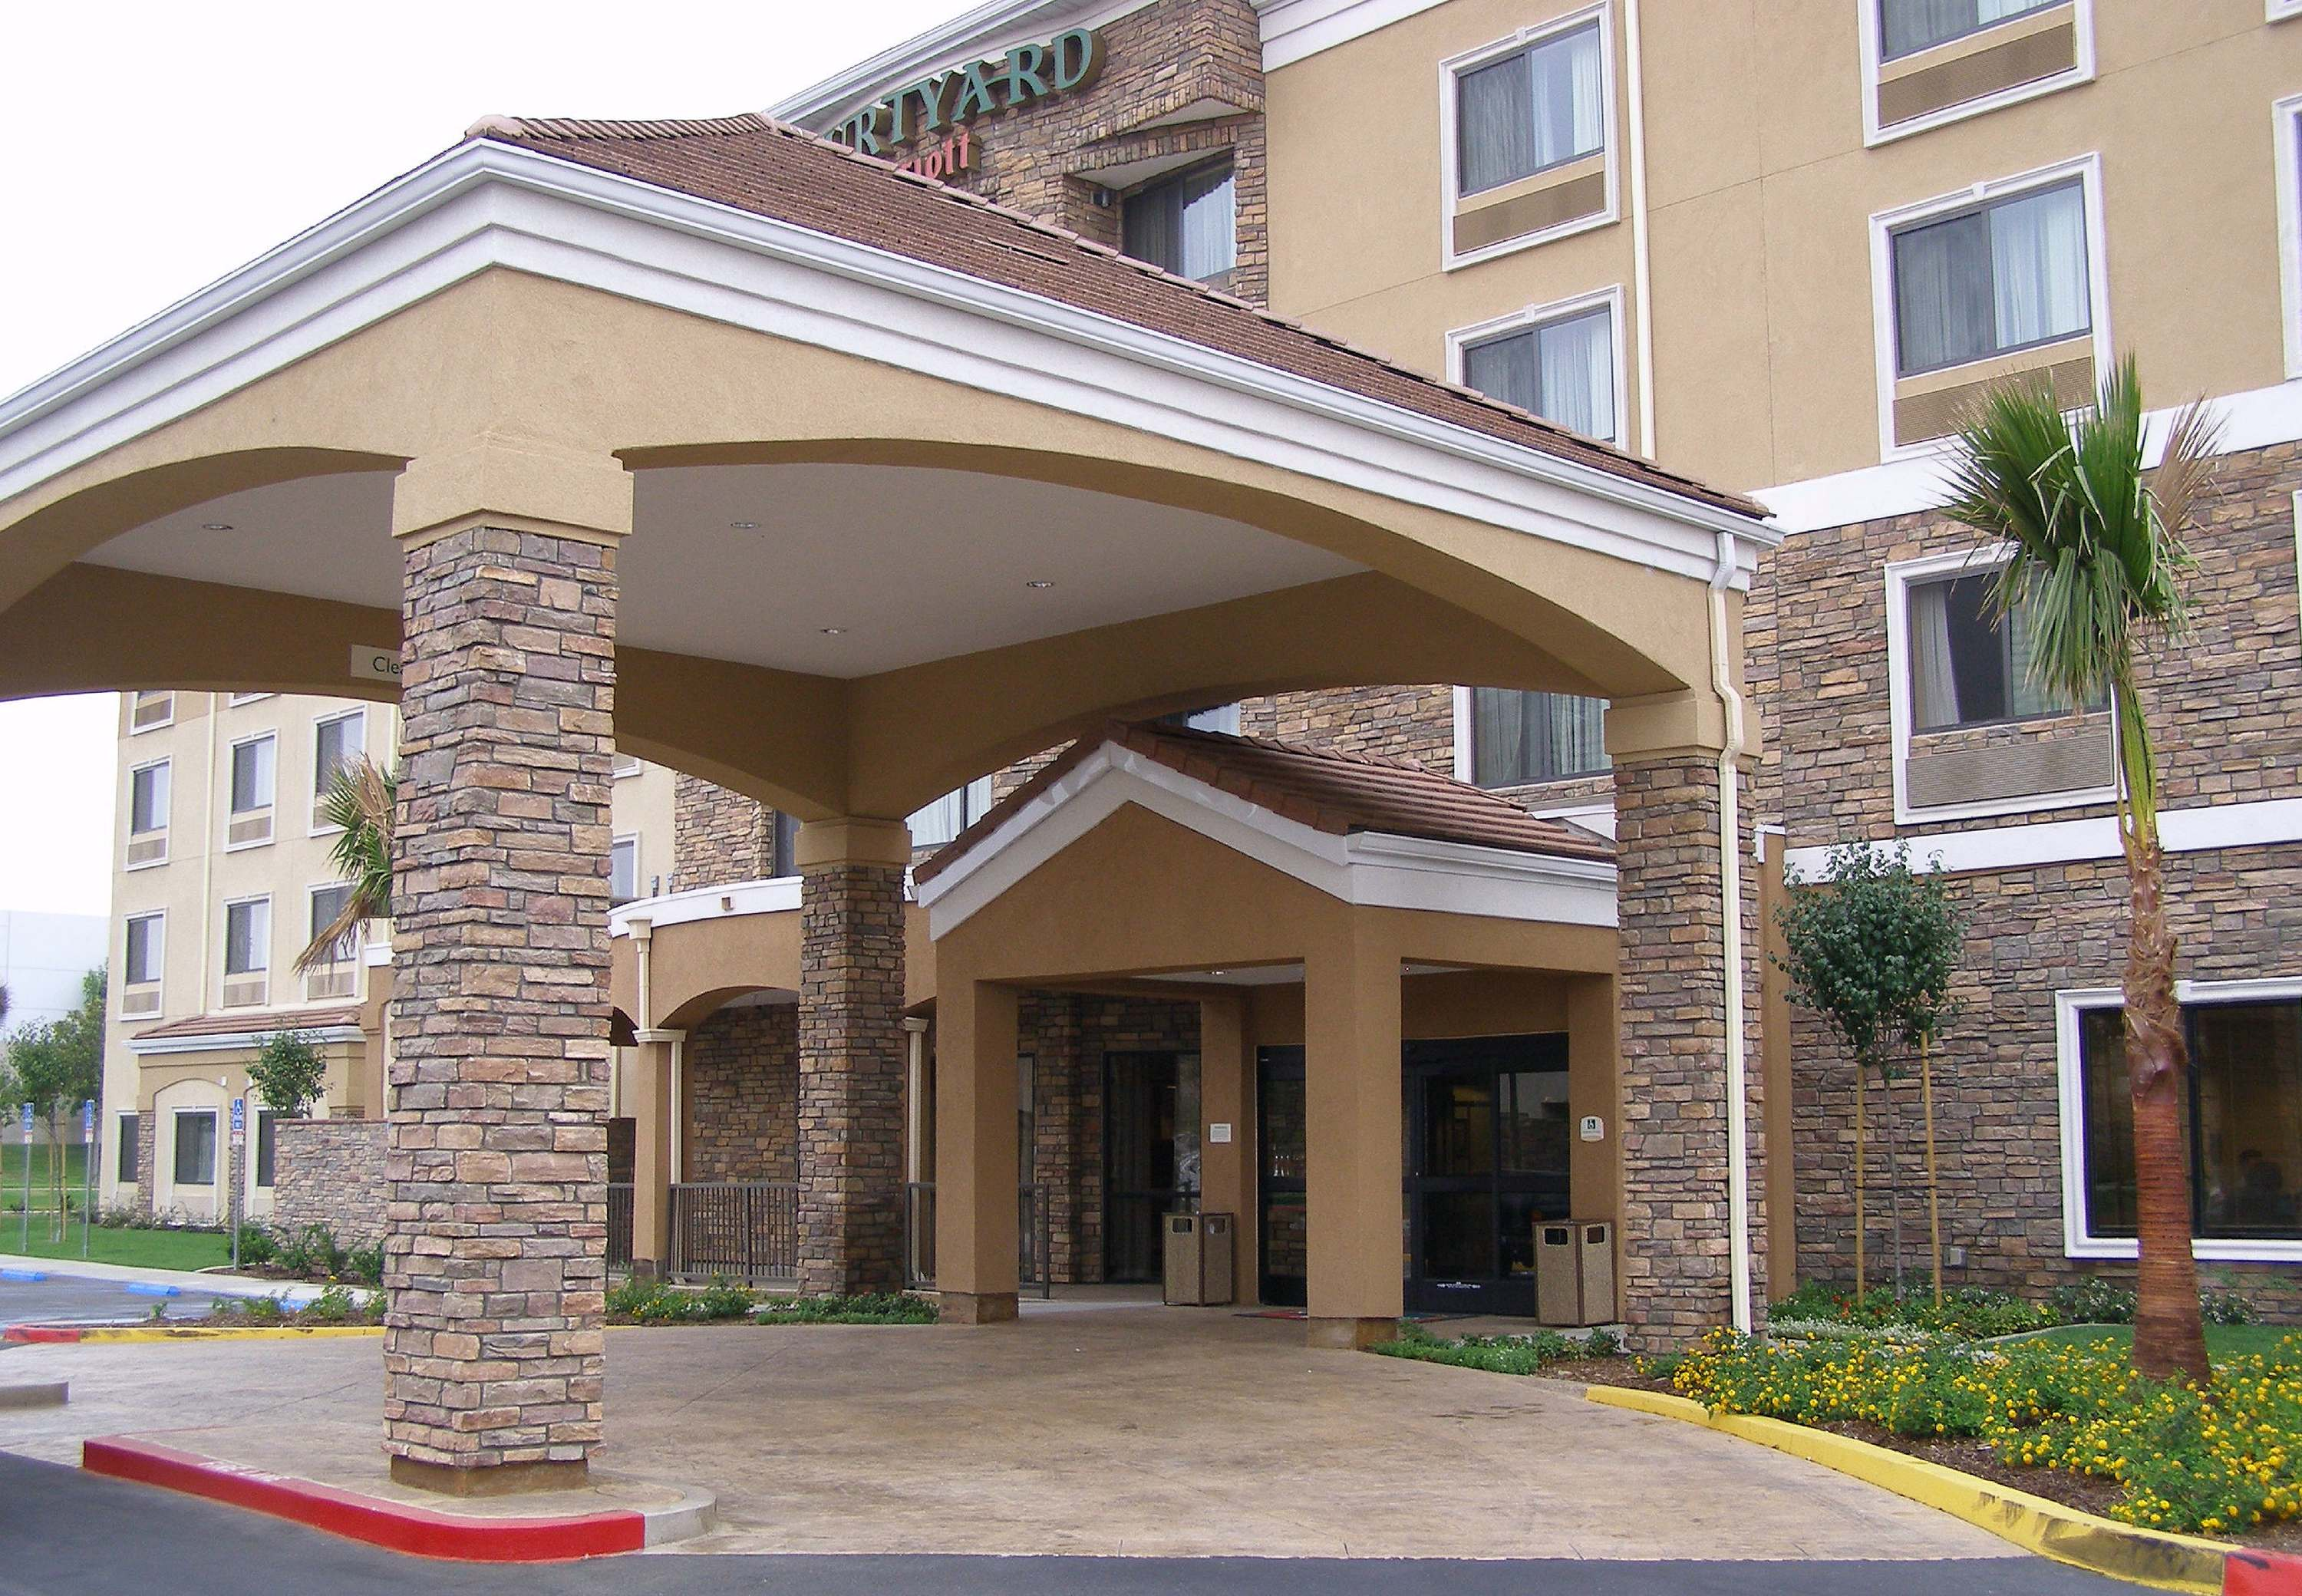 Courtyard by Marriott Ontario Rancho Cucamonga image 11